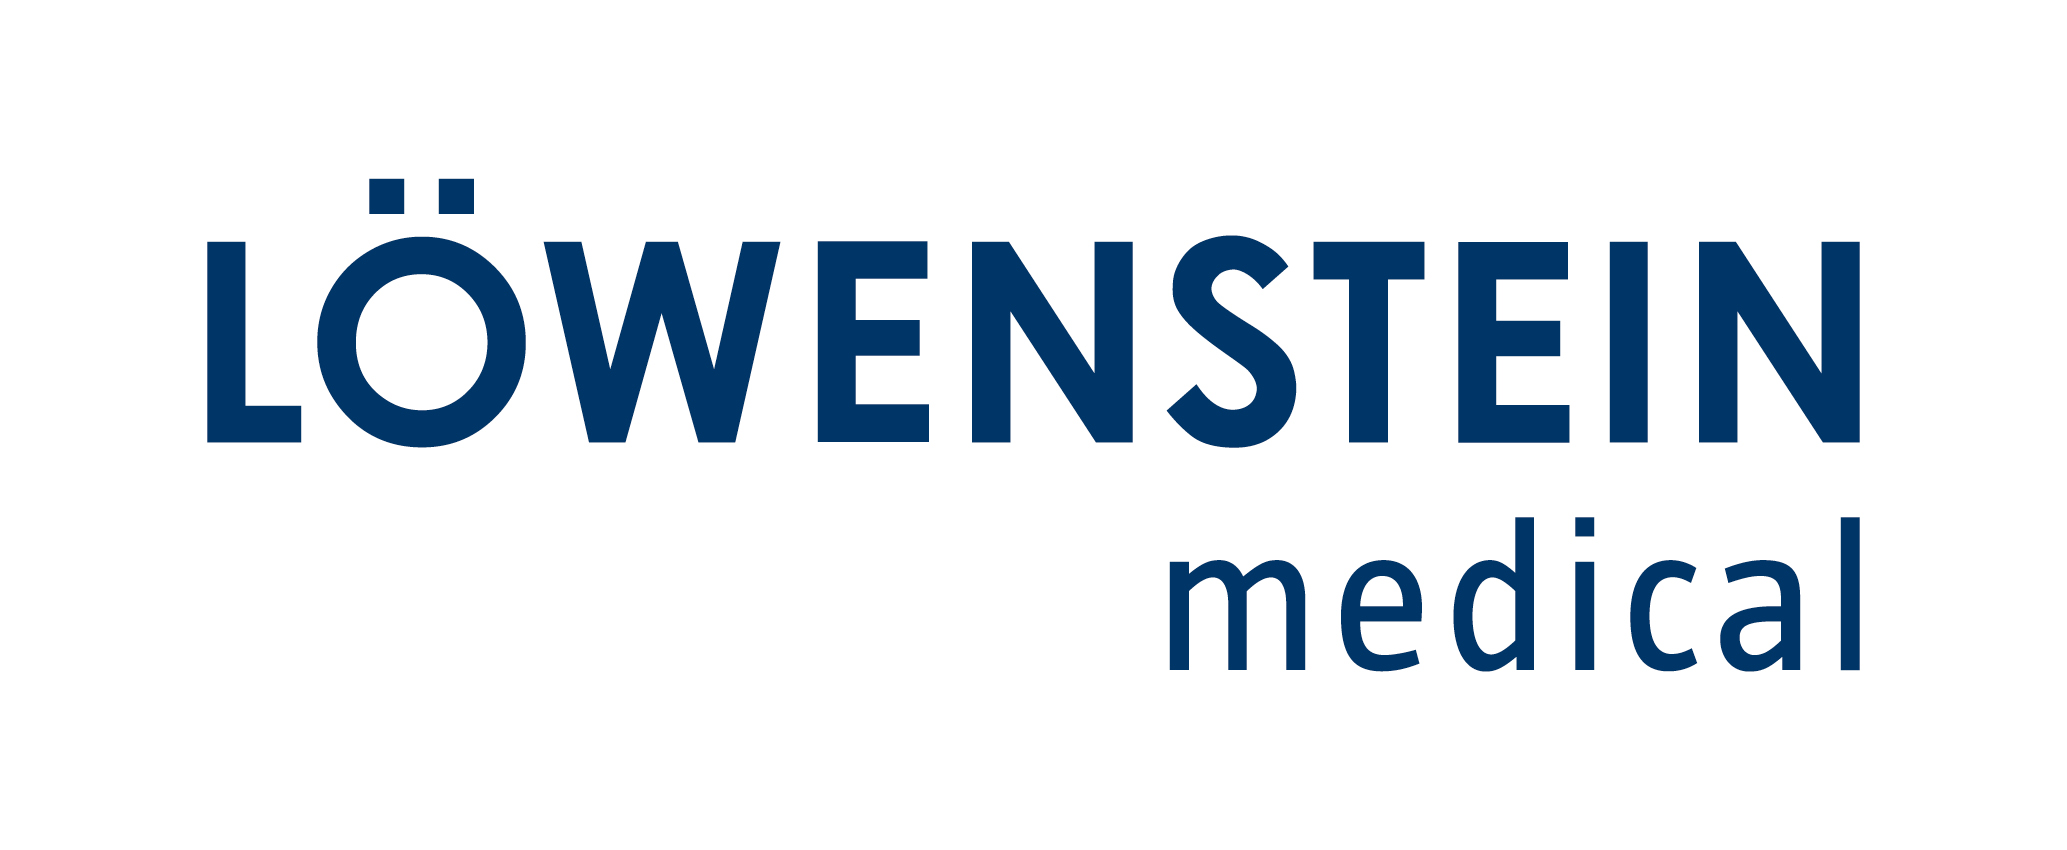 Löwenstein Medical Homecare